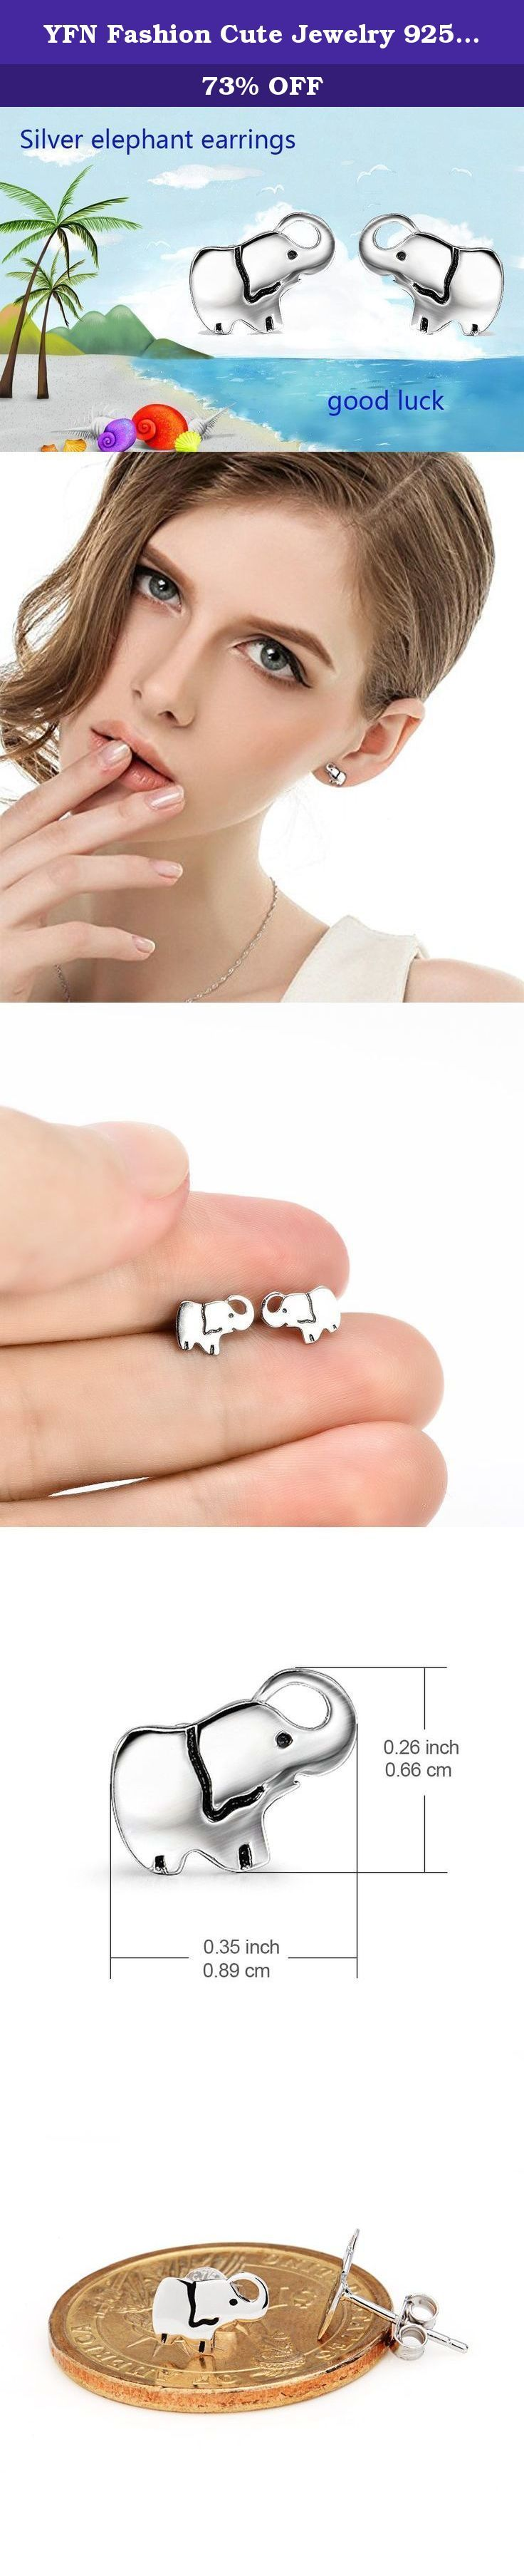 YFN Fashion Cute Jewelry 925 Sterling Silver Good Lucky Mini Elephant Stud Earrings for Women Girls (elephant). Come with a lovely gift box,you may sent it to your special one,small cute elephant stud earrings is a best gift to your girlfriend,wife,lover,in christmas,birthday,graduation,all festival YAFEINI : A famous jewelry brand Four jewelry chain stores in Hongkong,Shenzhen,Yiwu,Guangzhou. High Quality jewelry and low price. Best service and 24 hours response,100% satisfied Factual...